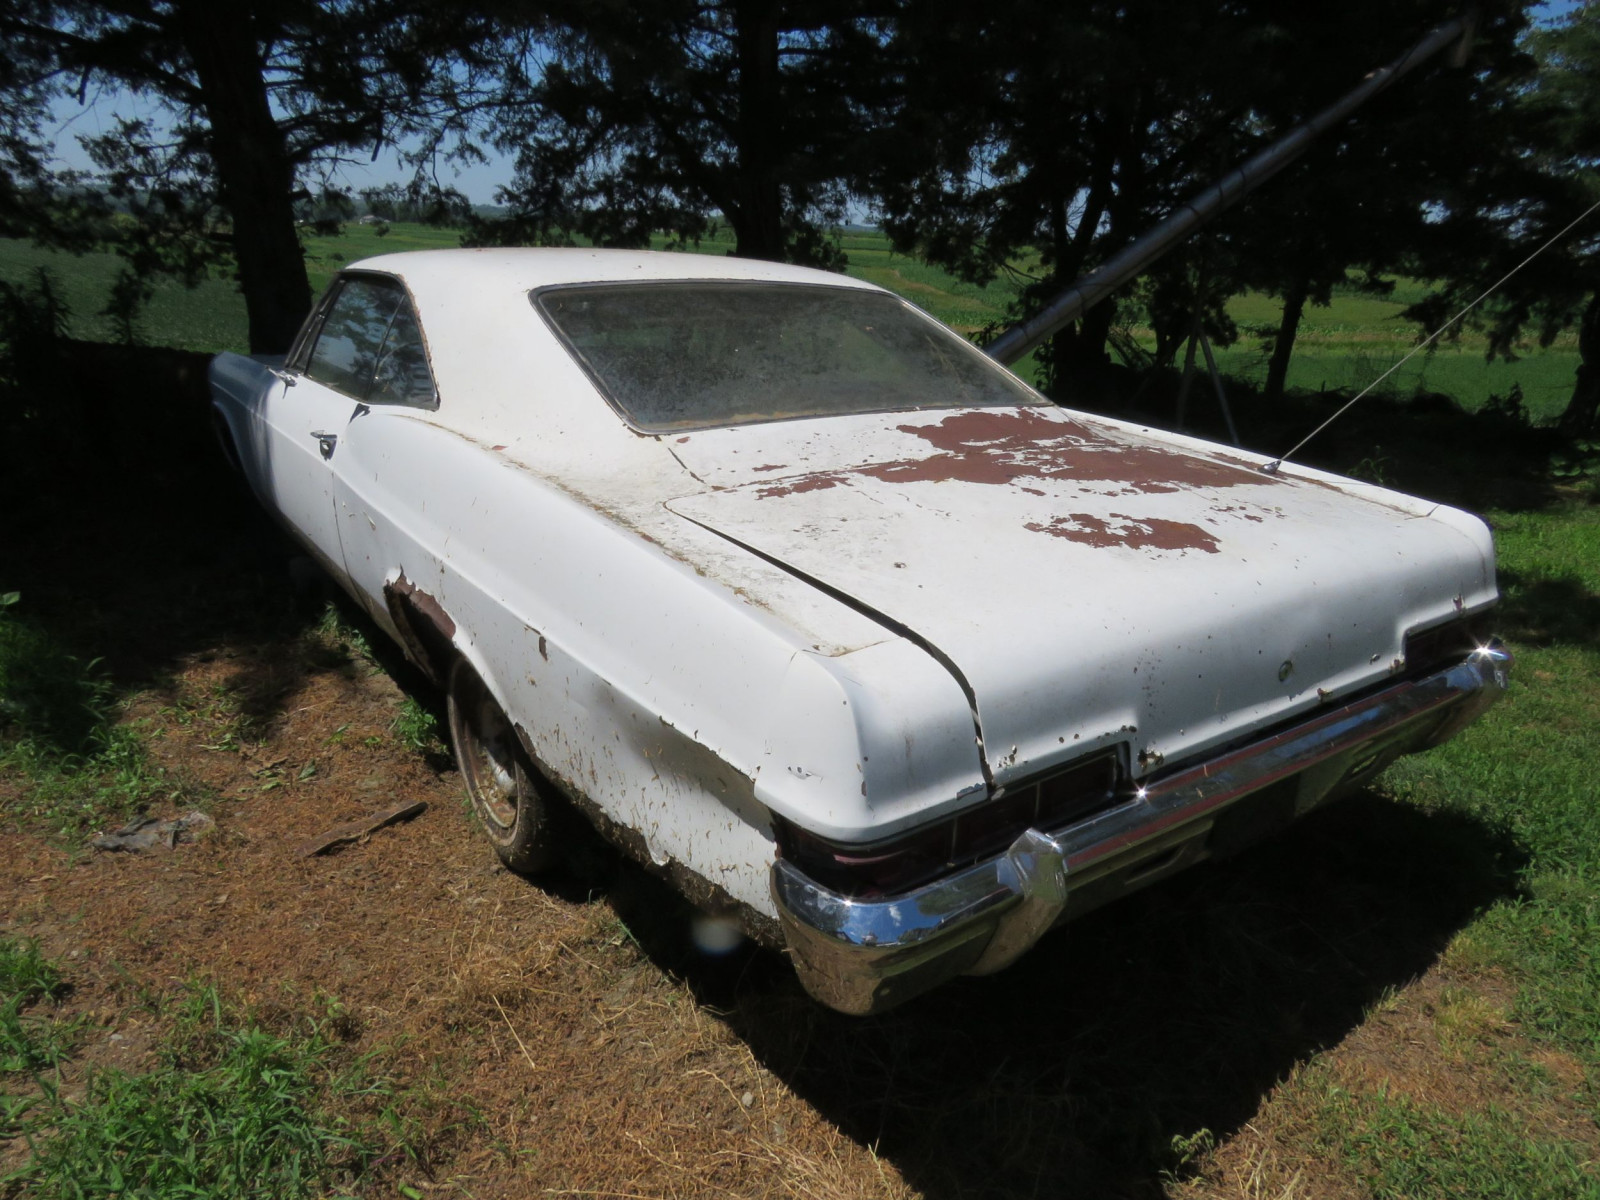 1965 Chevrolet Impala For Project or parts - Image 6